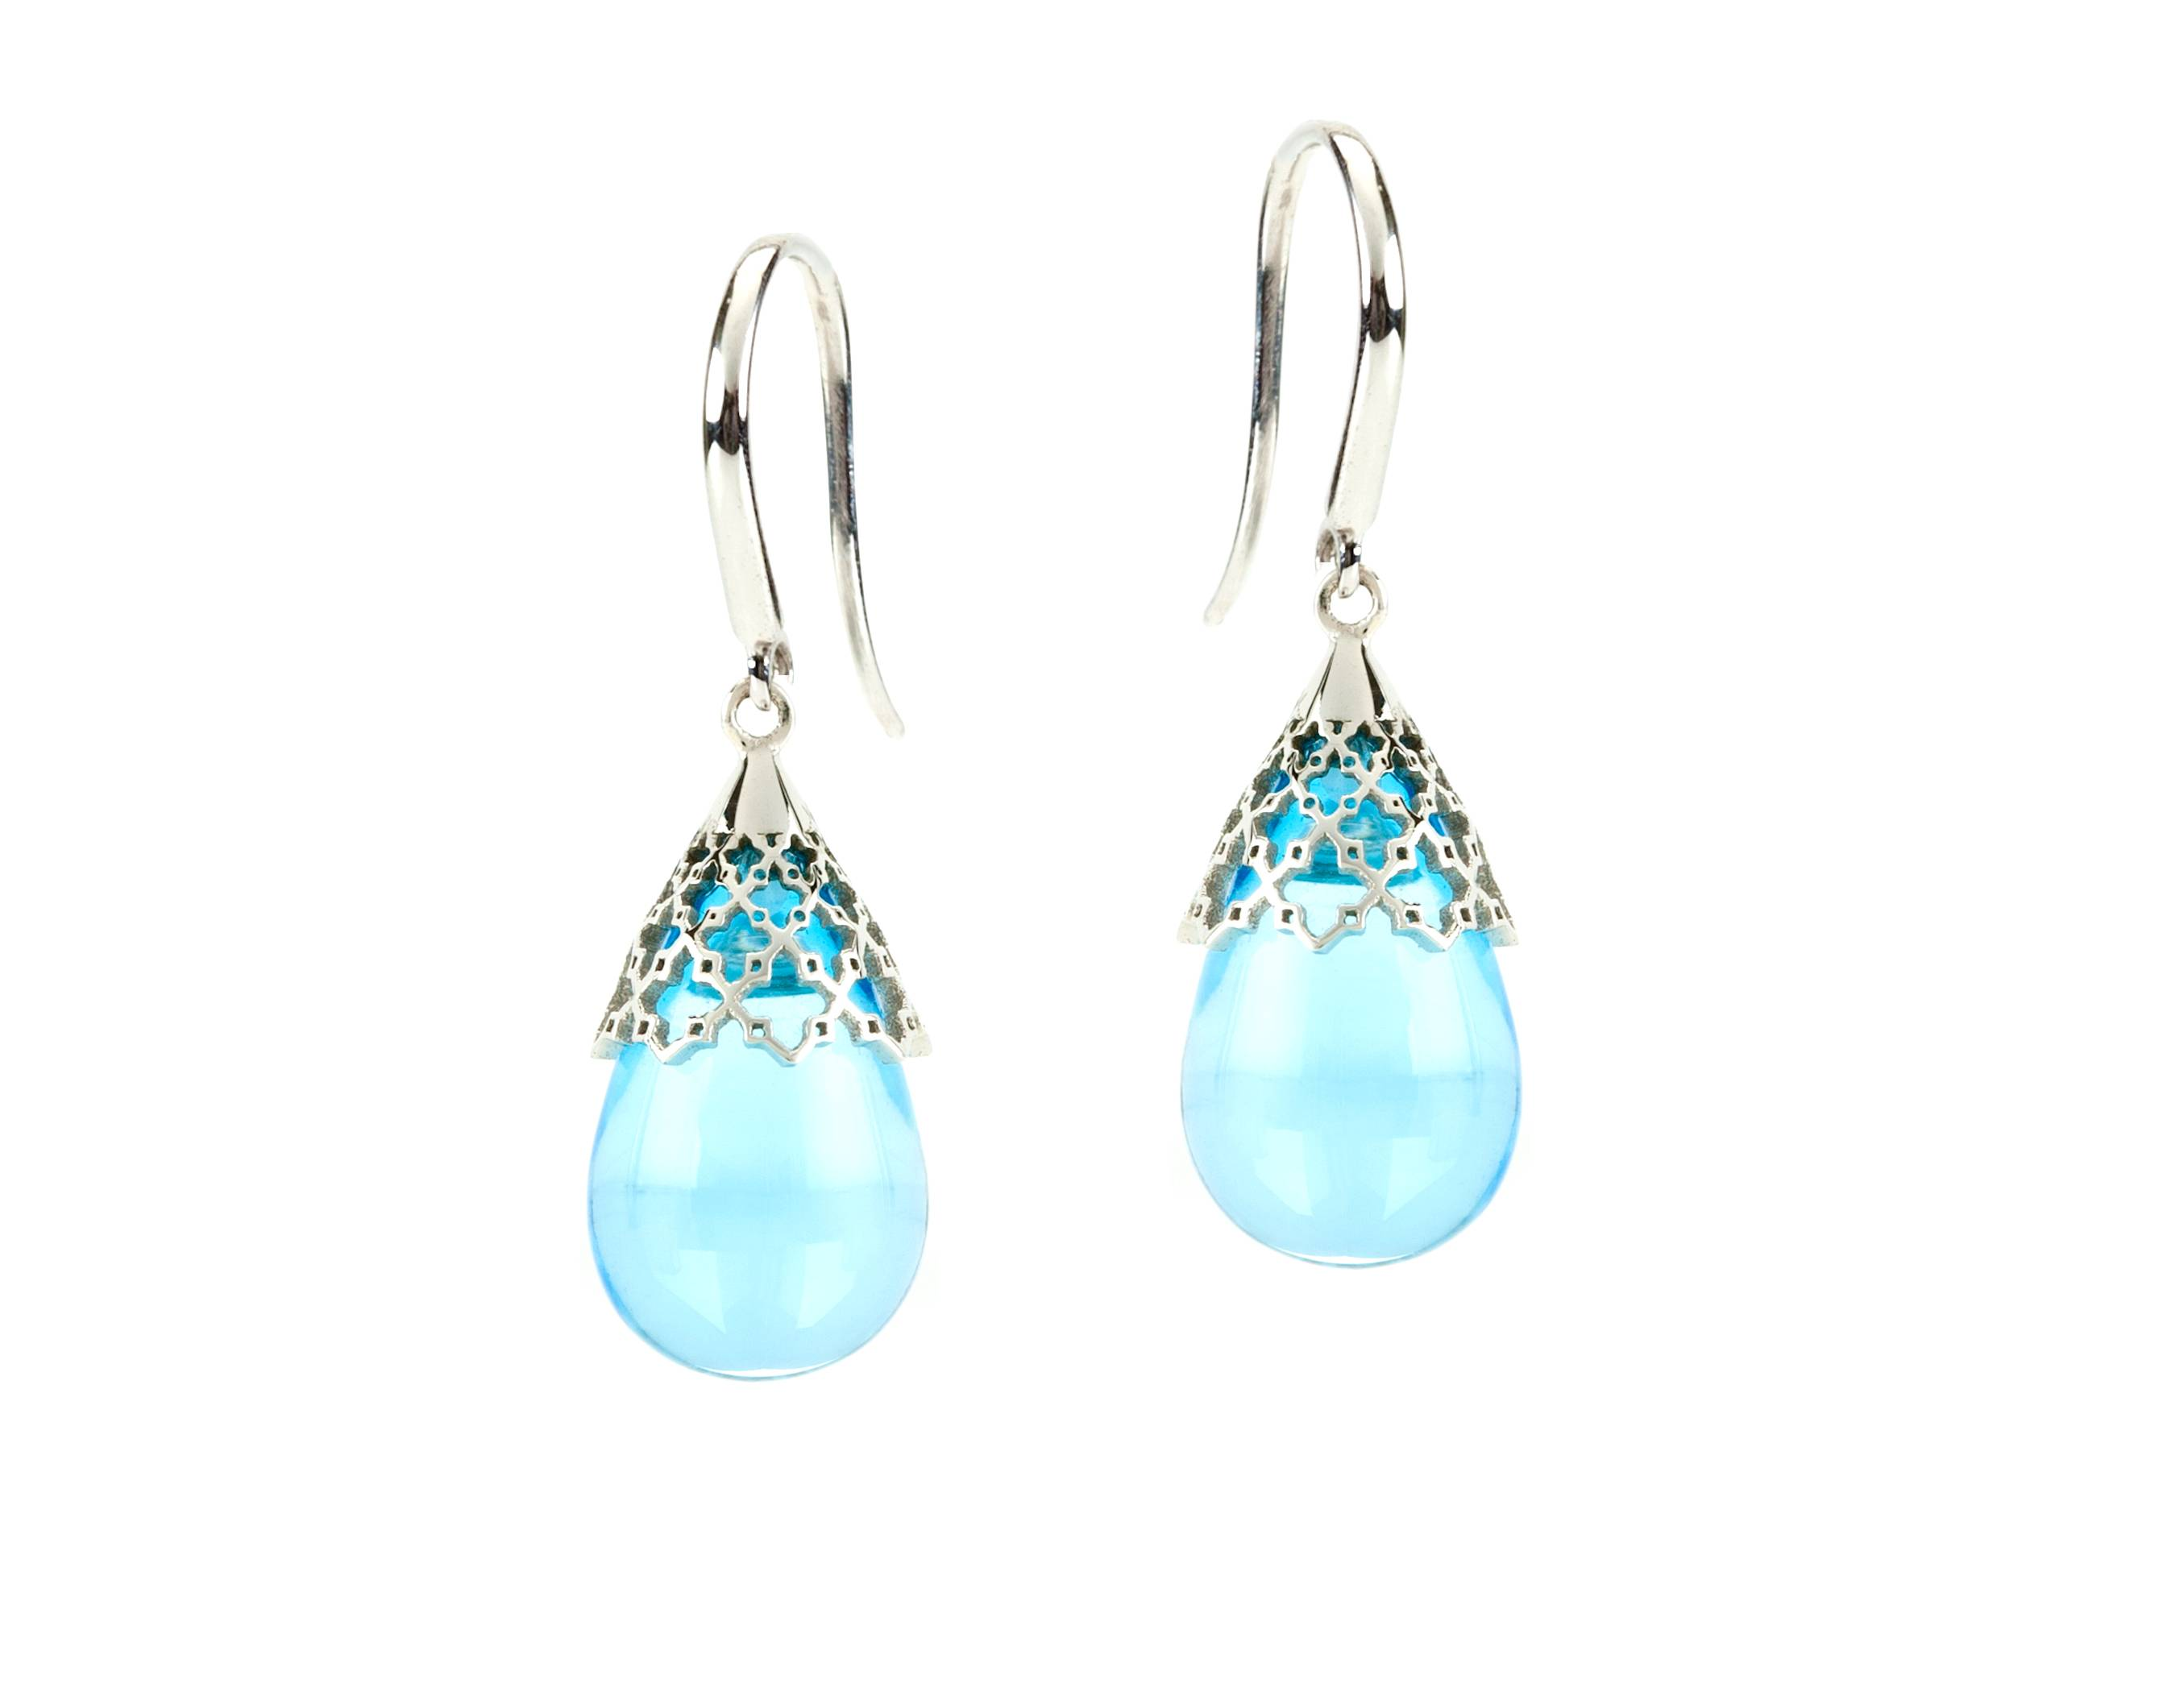 BIRKS MUSE Collection, Mesh Tear Drop Blue Topaz Earrings, in 18kt White Gold